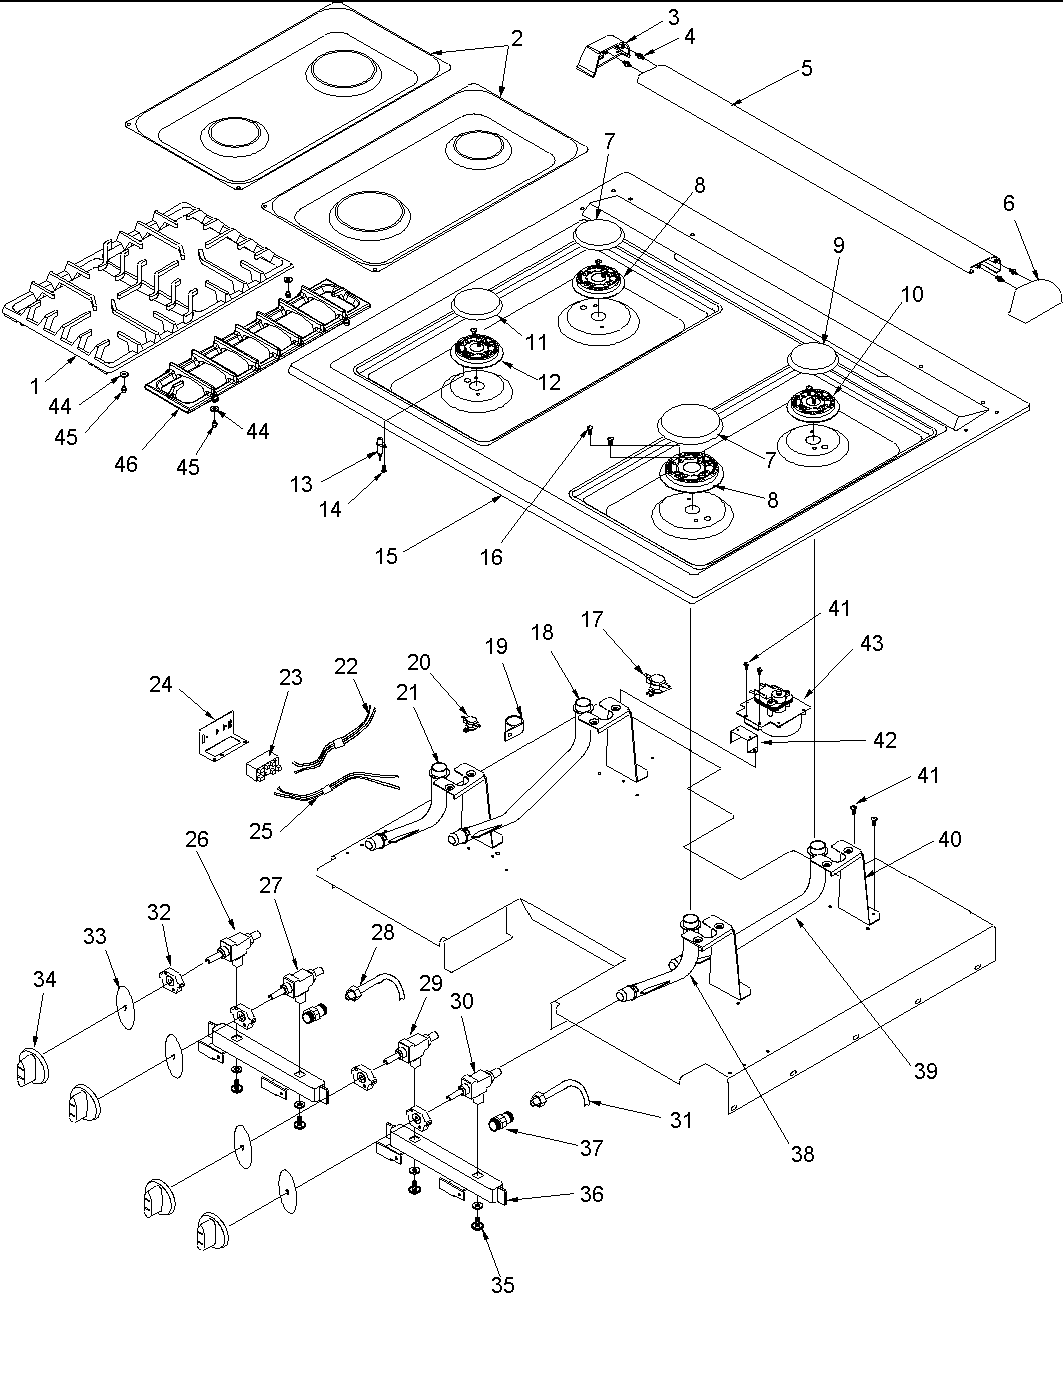 acs3350aw slide-in self cleaning gas range main top parts diagram